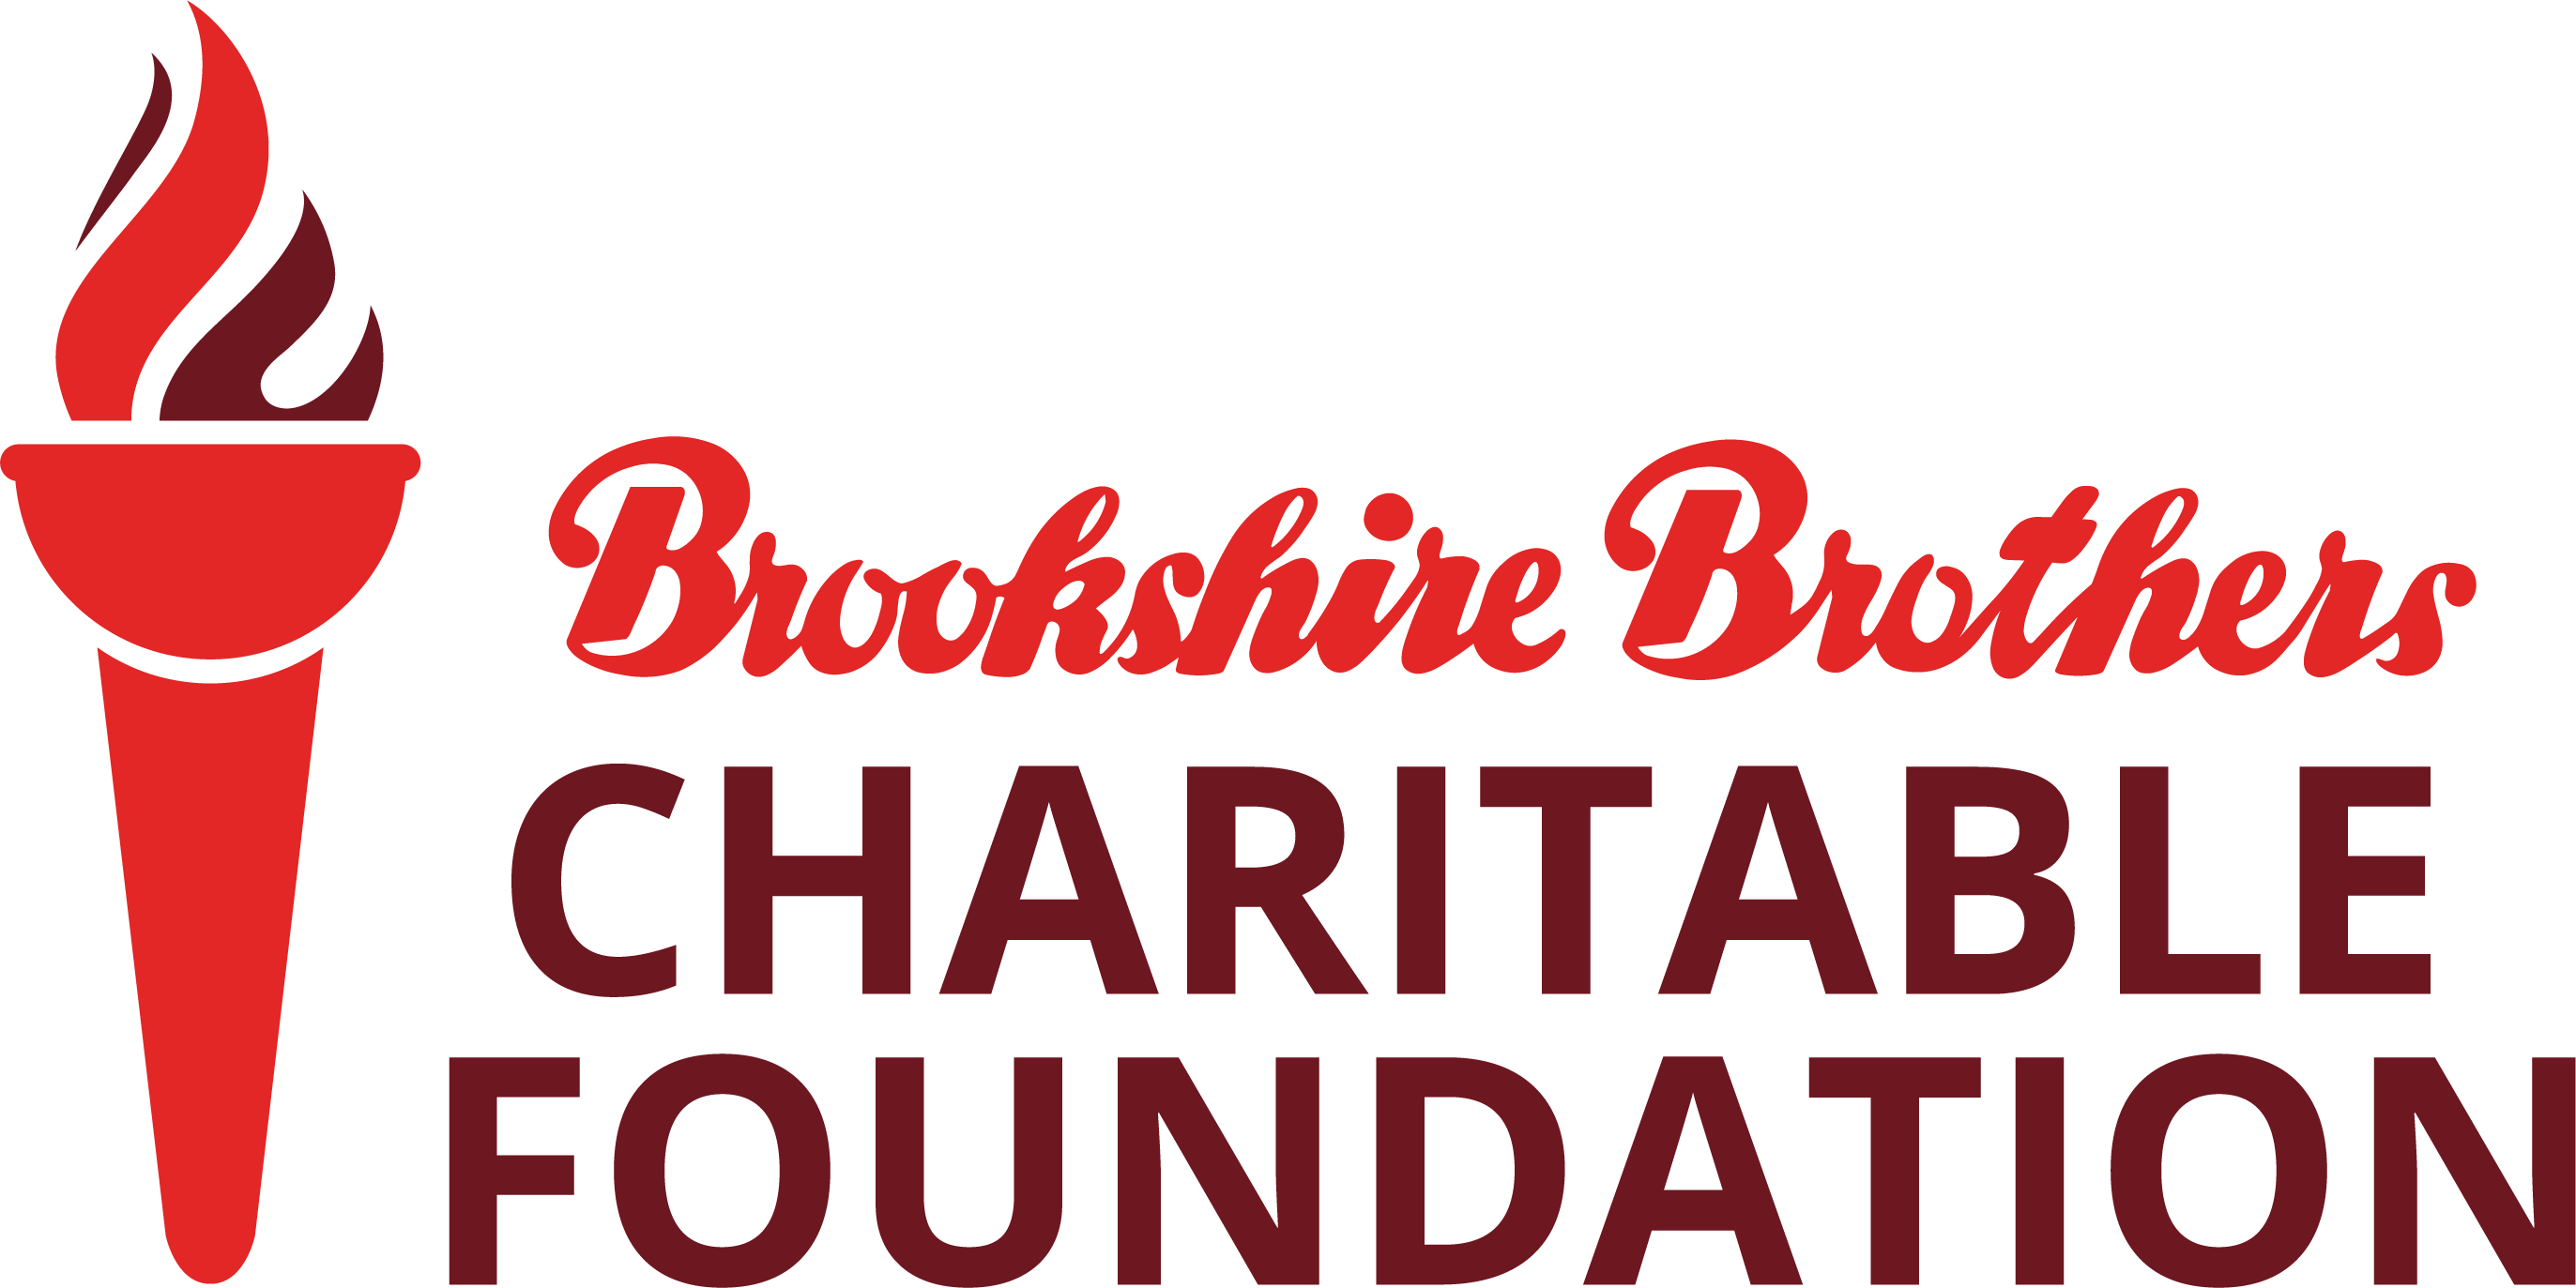 Brookshire Brothers Charitable Foundation